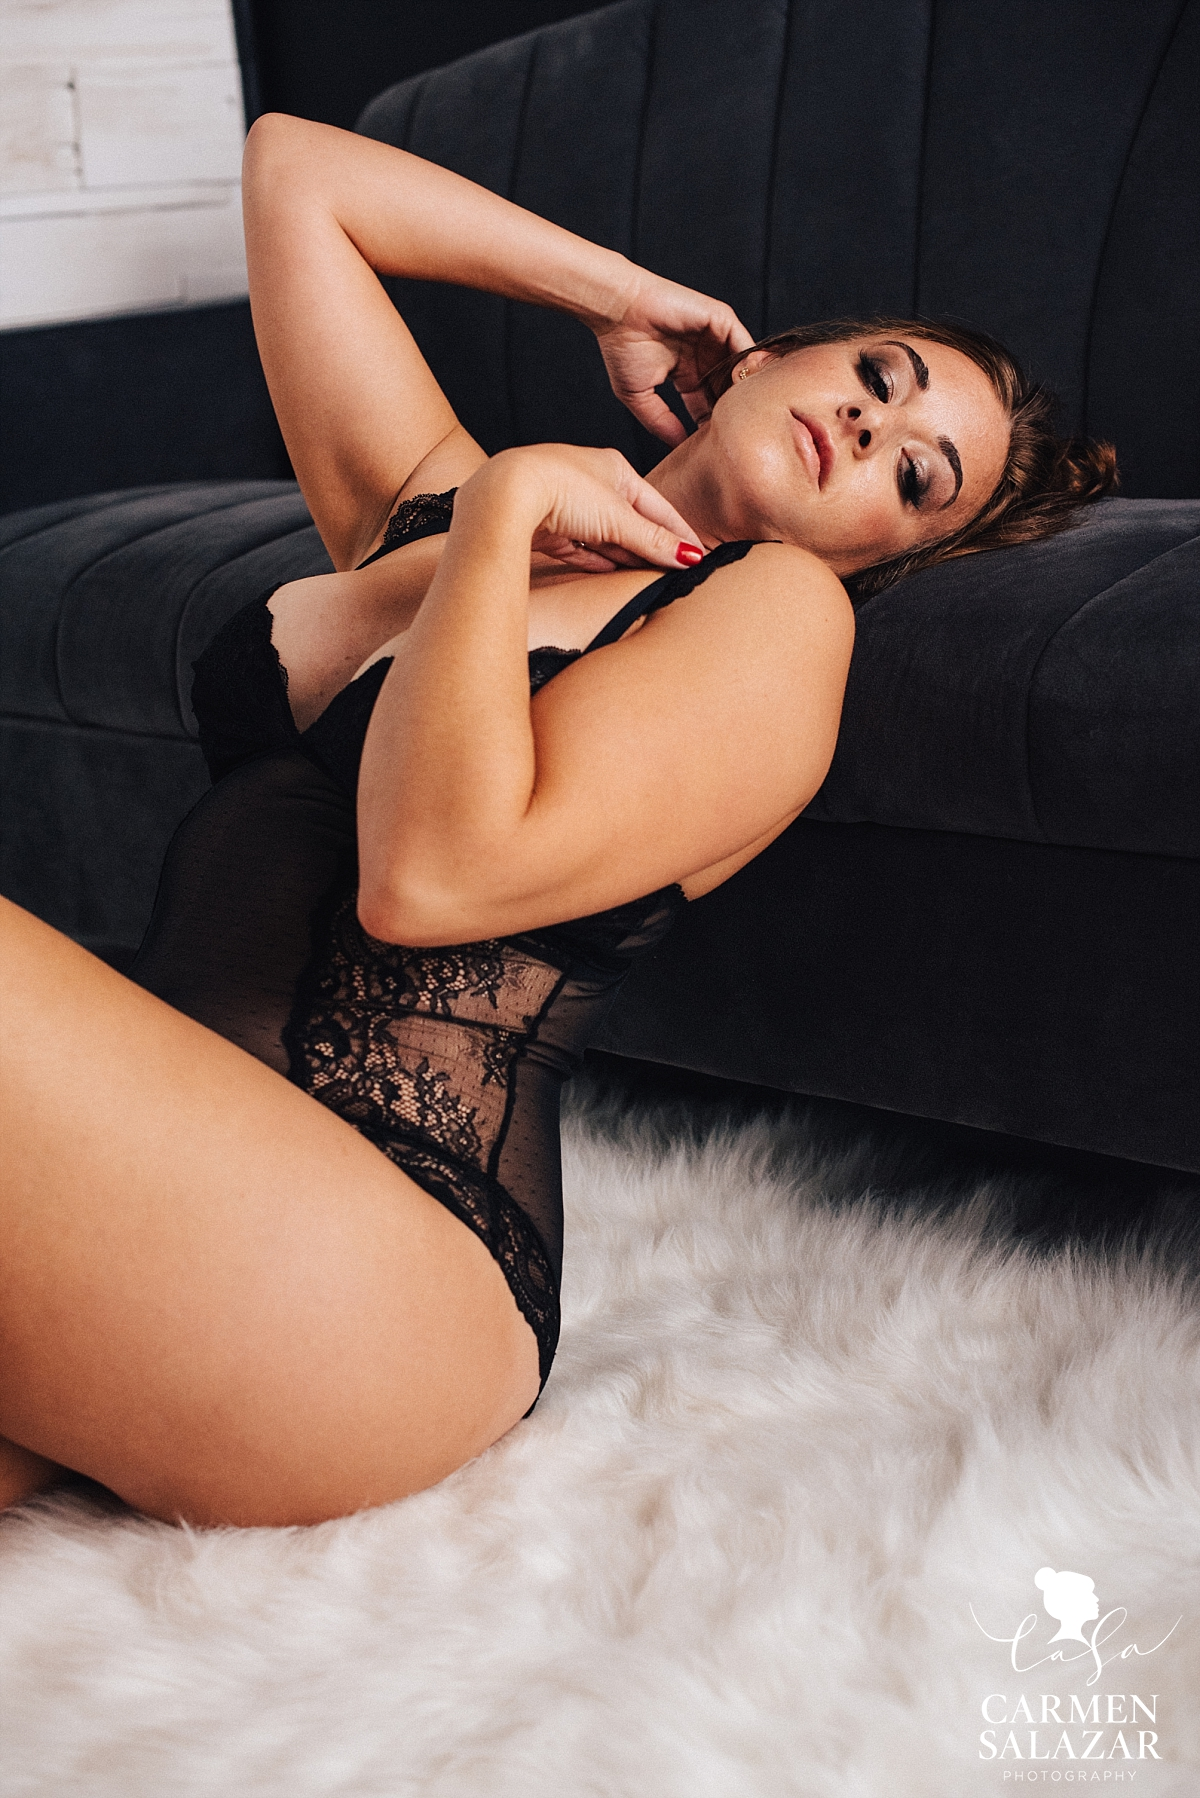 Fierce and sexy boudoir photography - Carmen Salazar